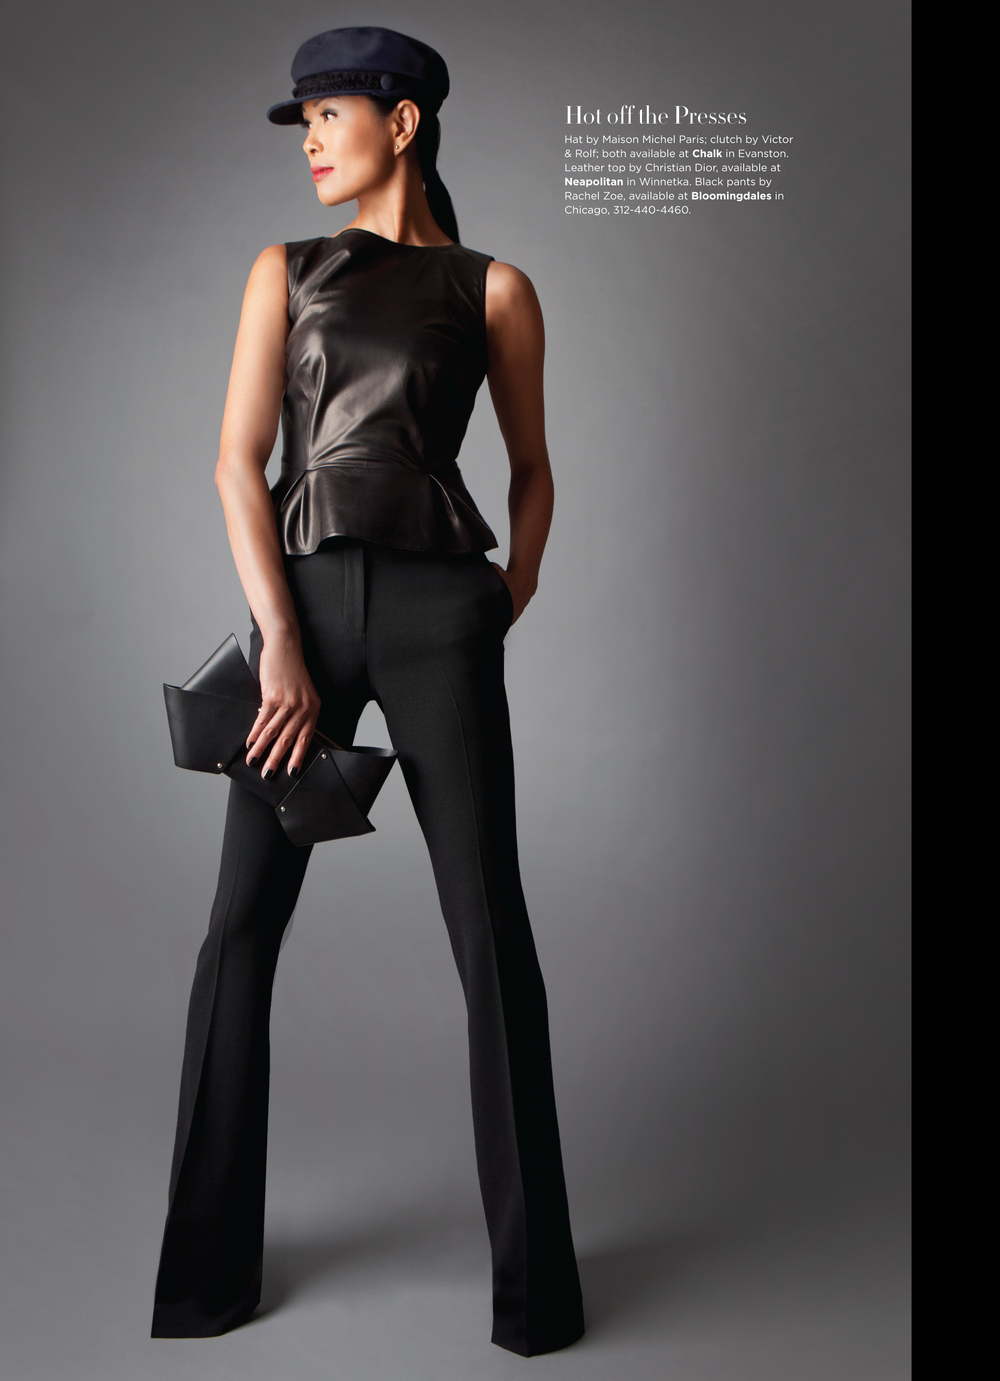 SR_AugSept2012_fashion-3.jpg